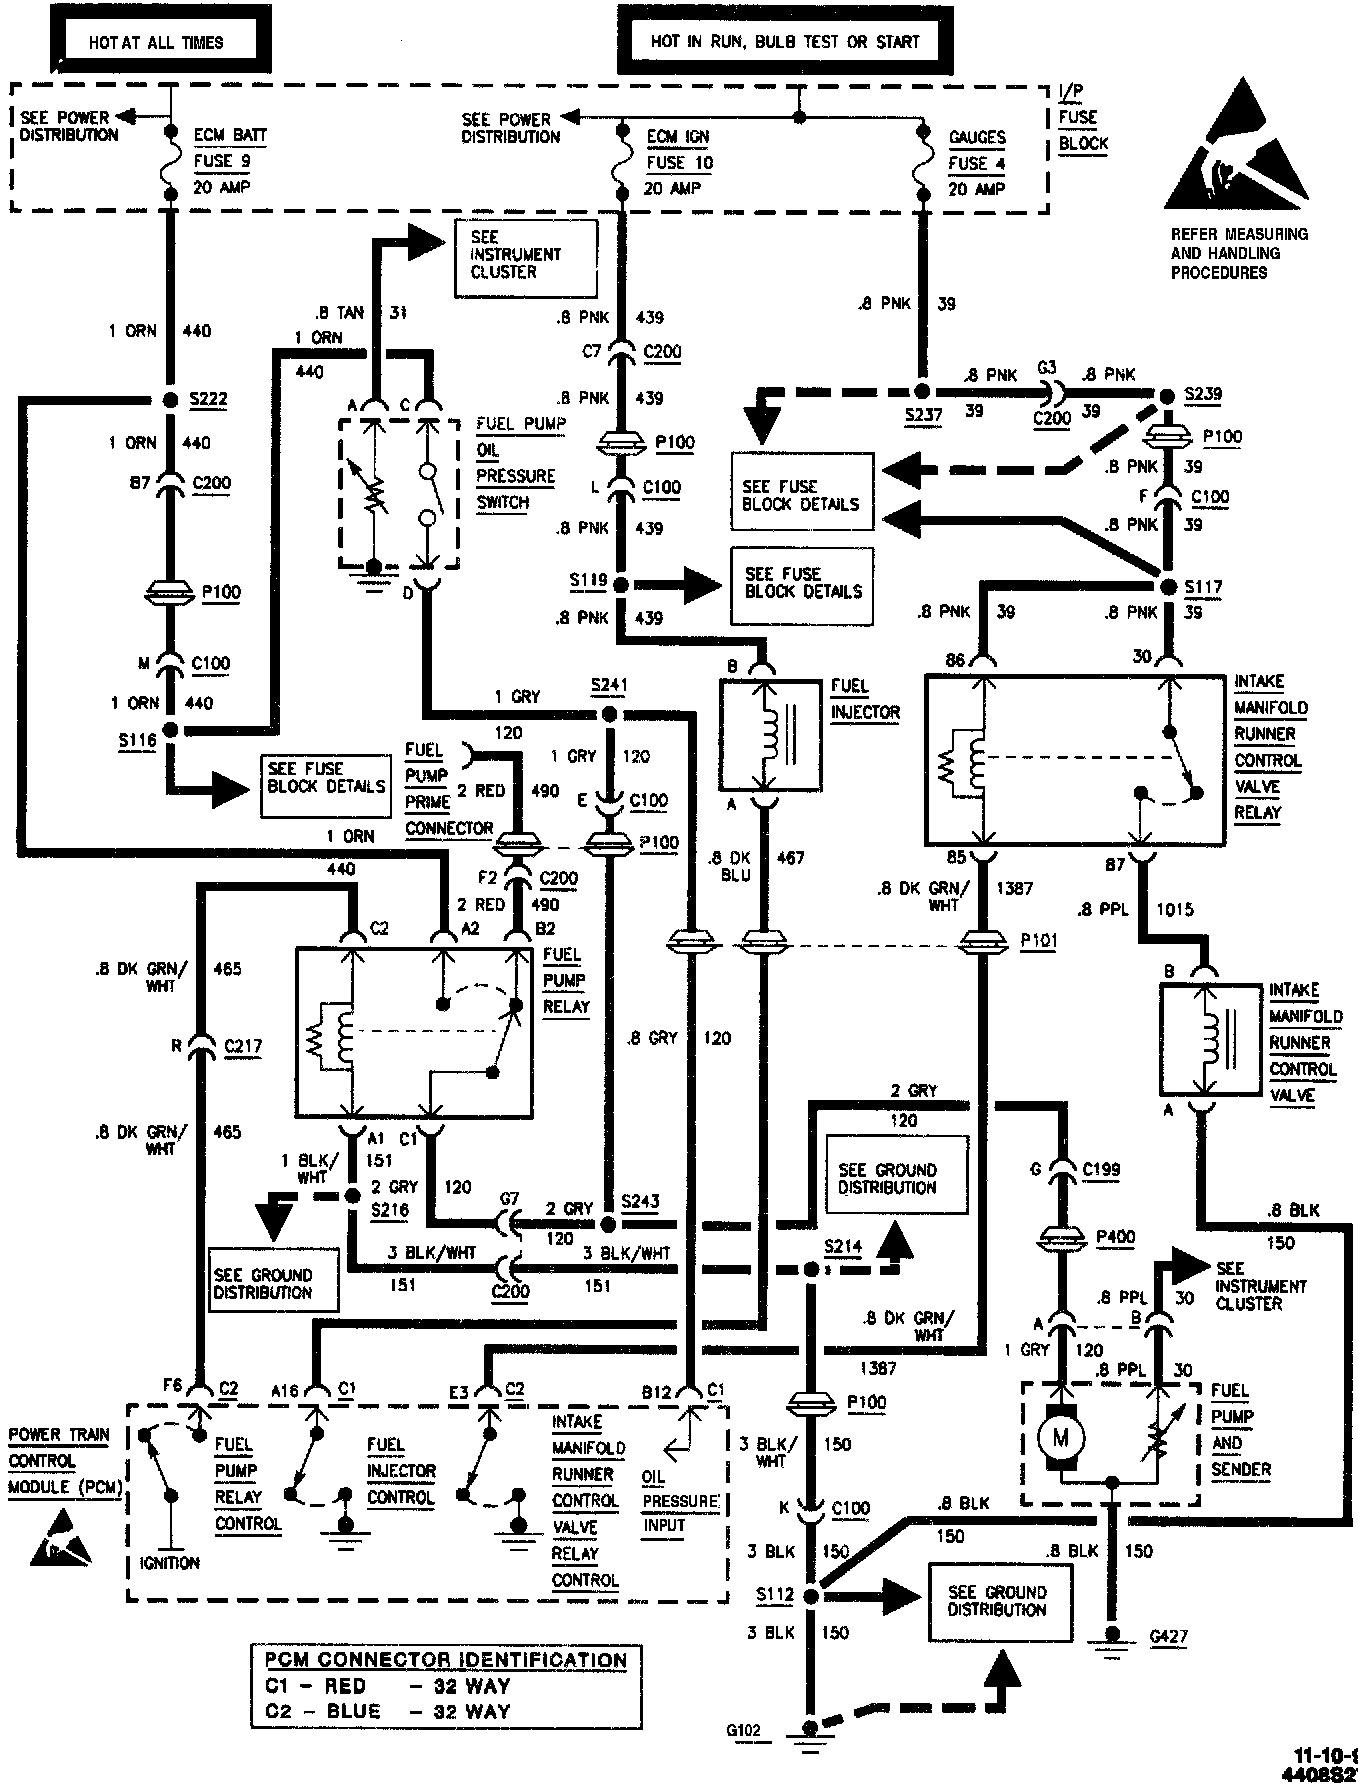 1997 chevy s10 wiring diagram 95 gmc wiring diagrams wiring diagrams of 1997 chevy s10 wiring diagram 2001 s10 wiring harness wiring diagram data